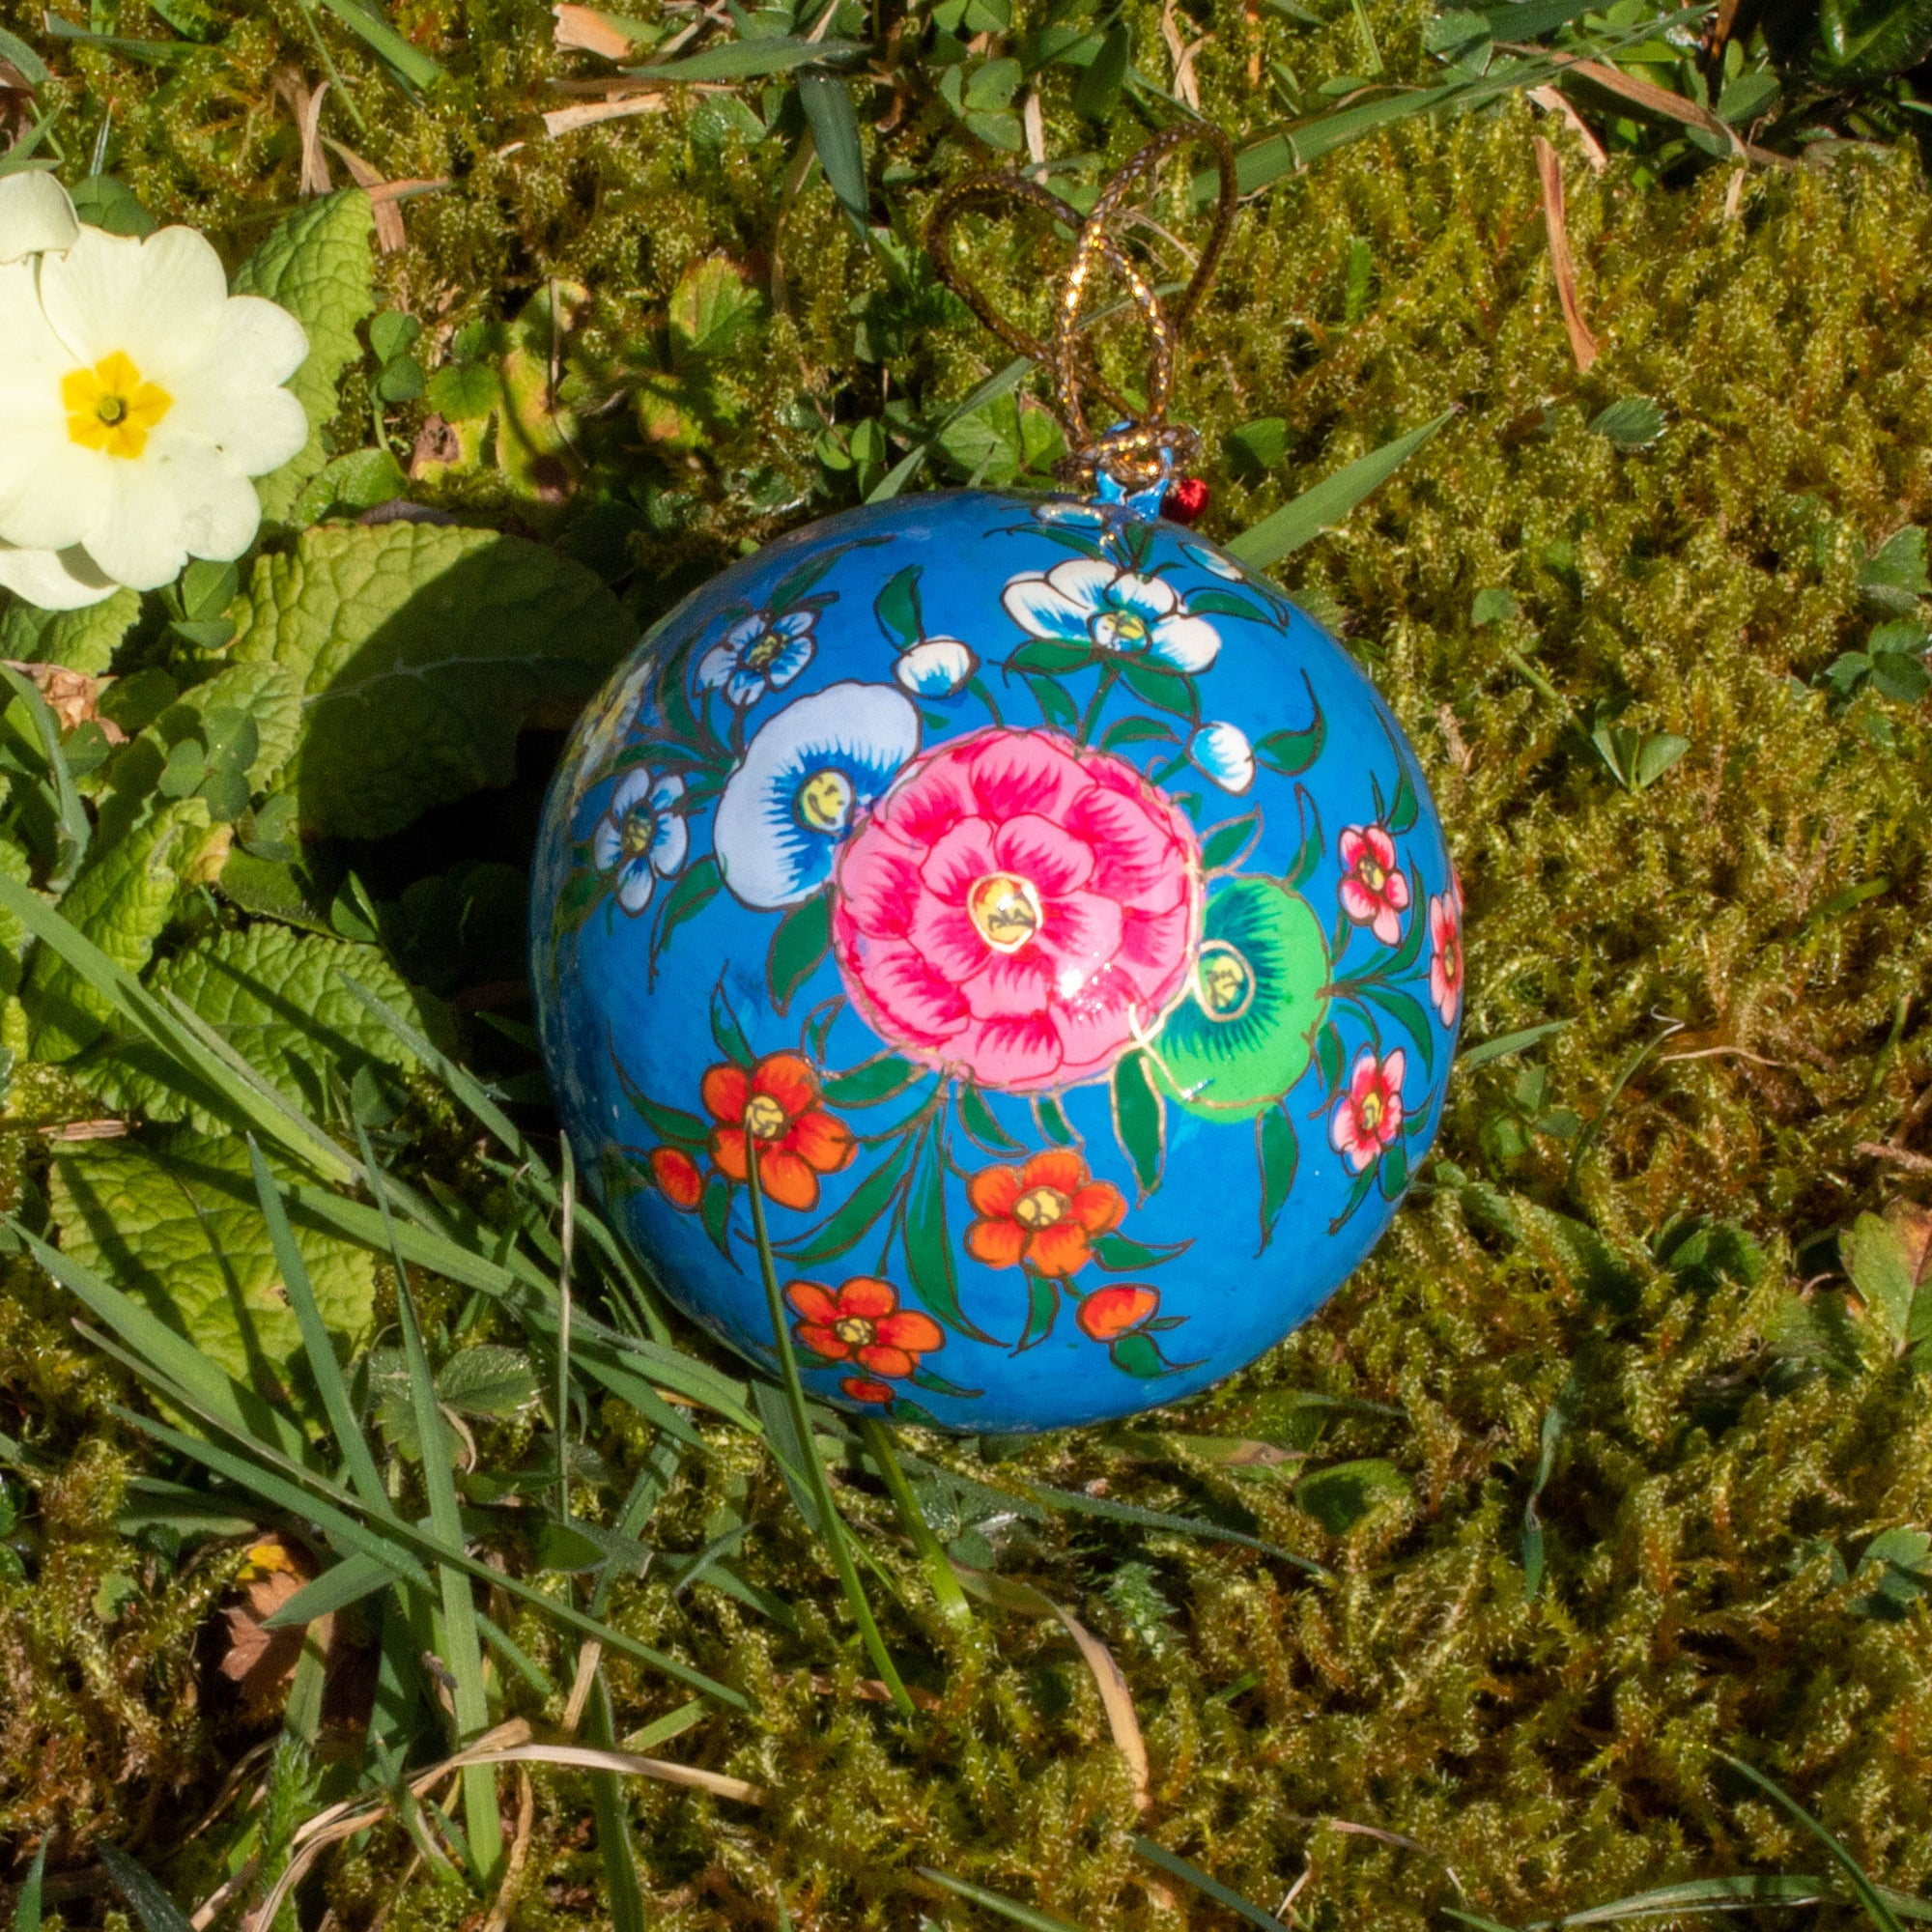 Spring/Easter Decoration - Blue Bauble With Painted Flowers | Decoration - The Naughty Shrew